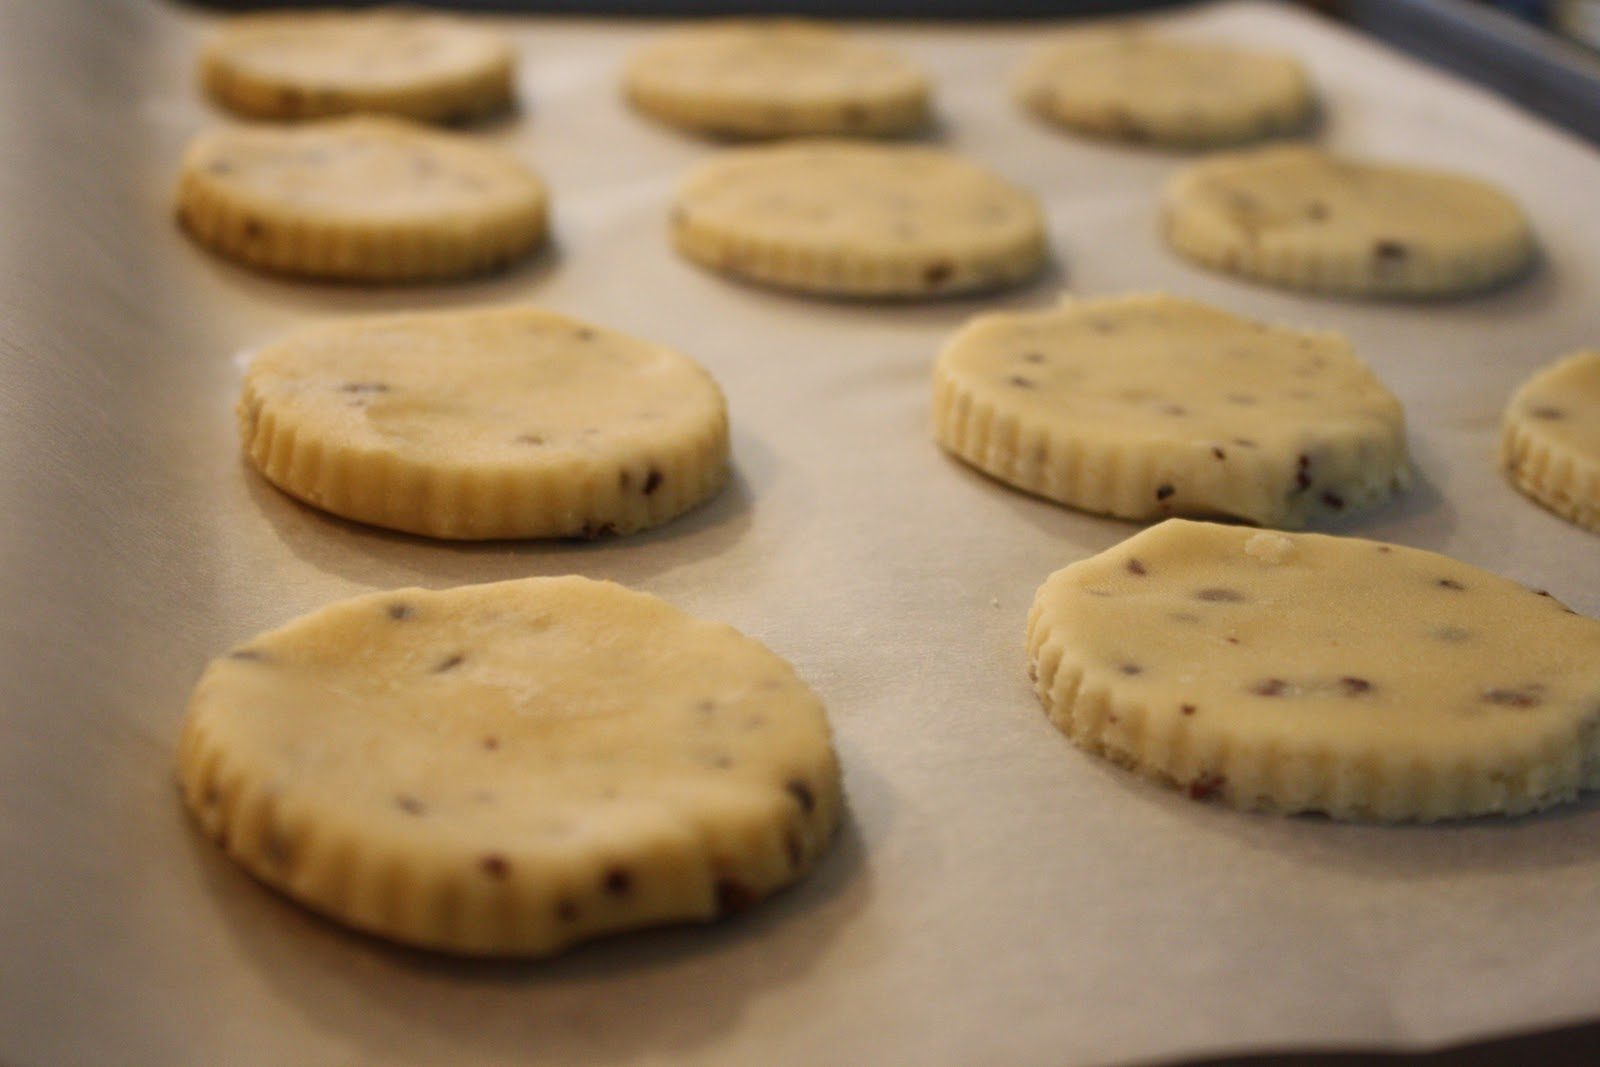 ... your World?: Day 114.5 Saint Paddy's Day Cacao Nib Shortbread Cookies